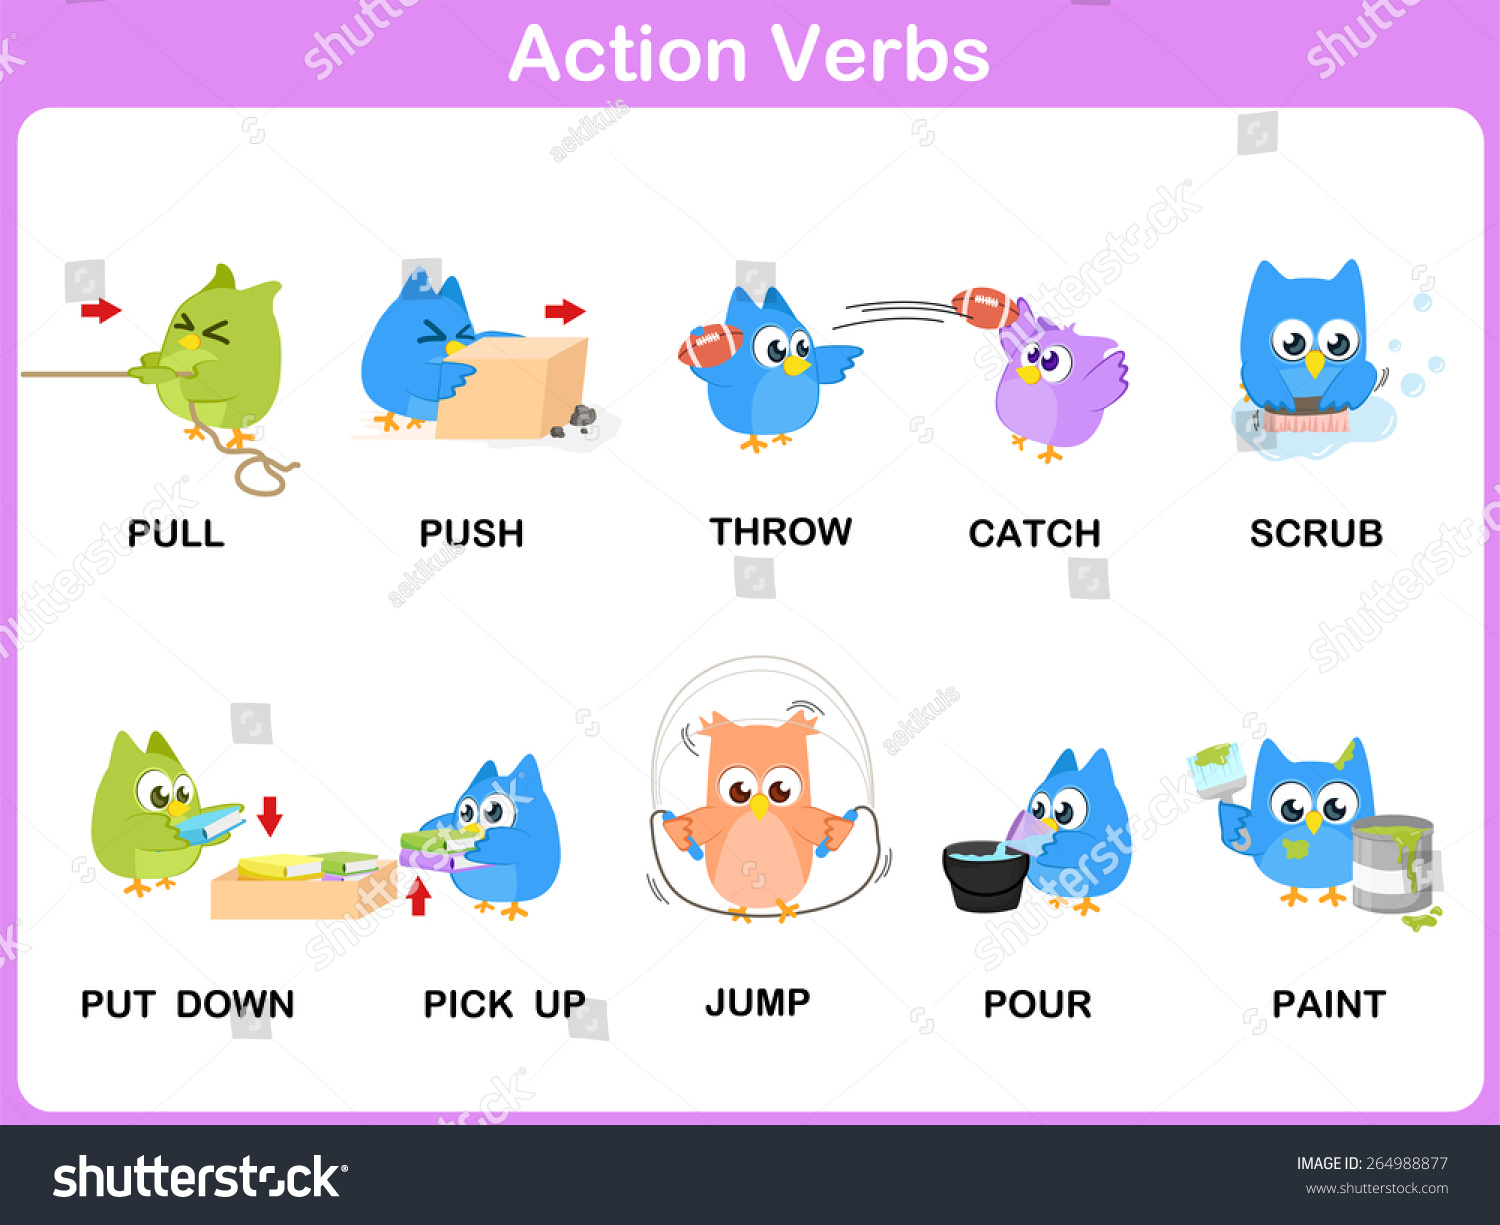 action verbs picture dictionary activity for kids - Action Berbs